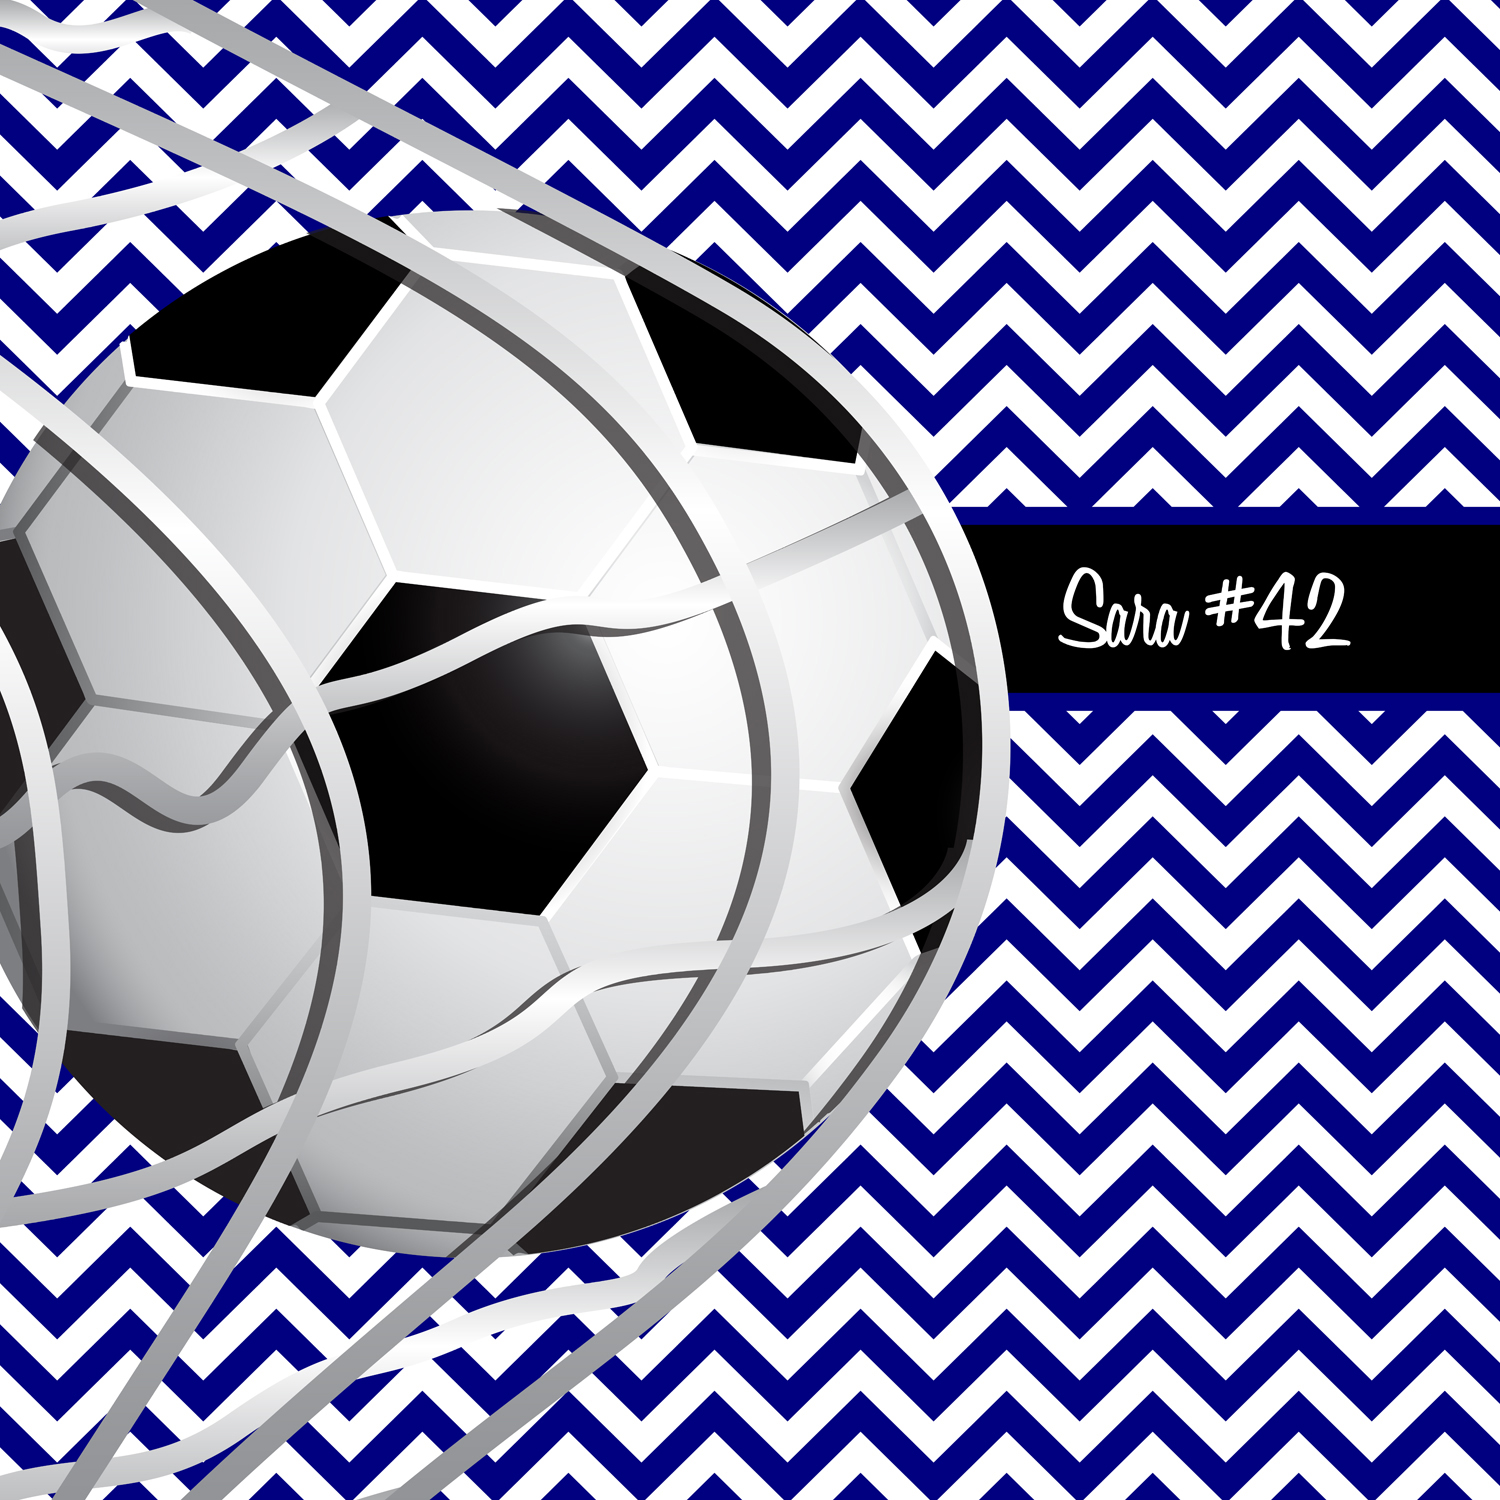 Black White And Blue Soccer Bedding For Kids And Teens